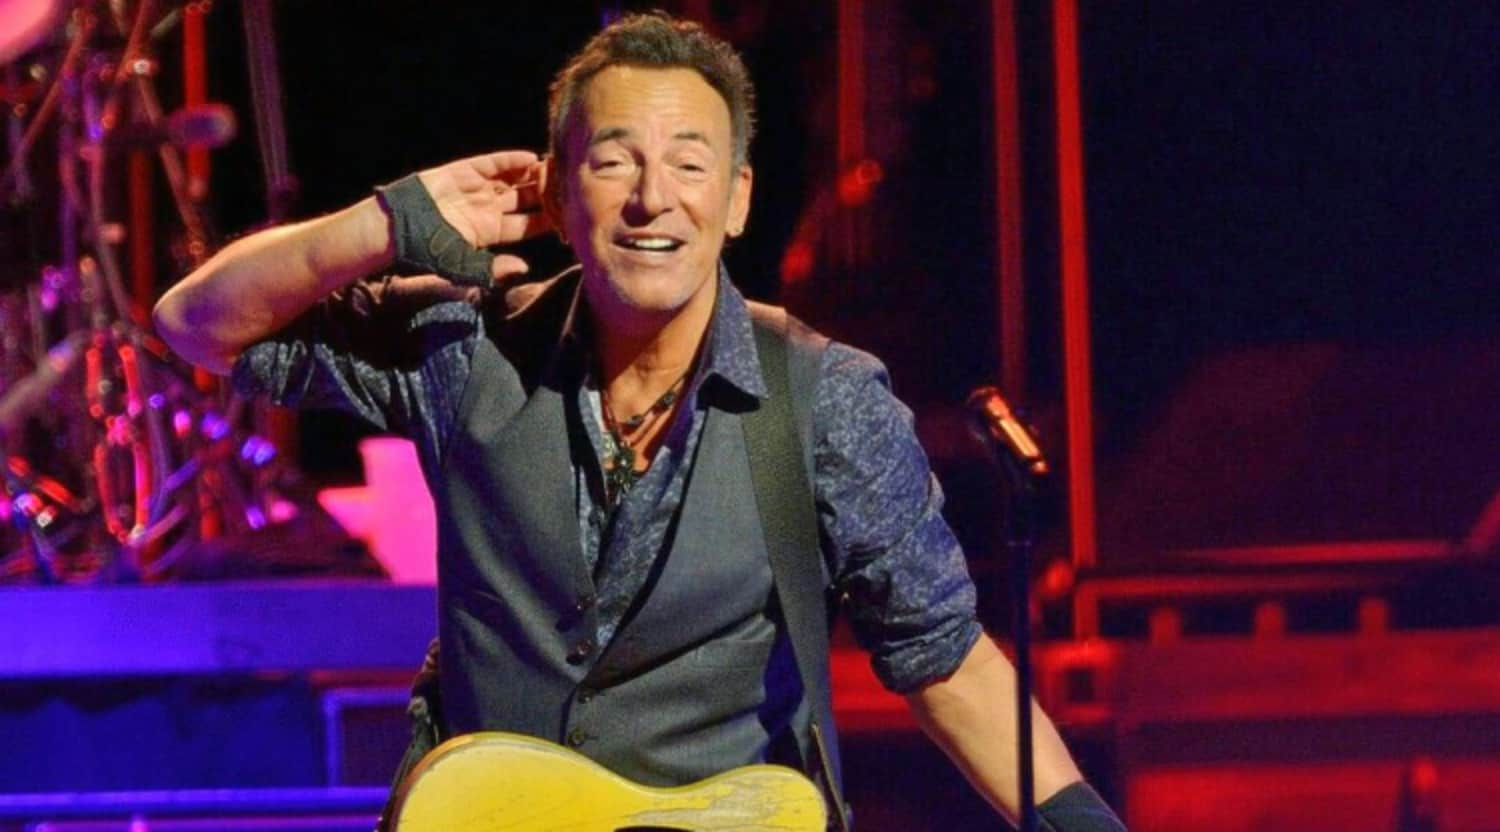 Bruce_concert_small